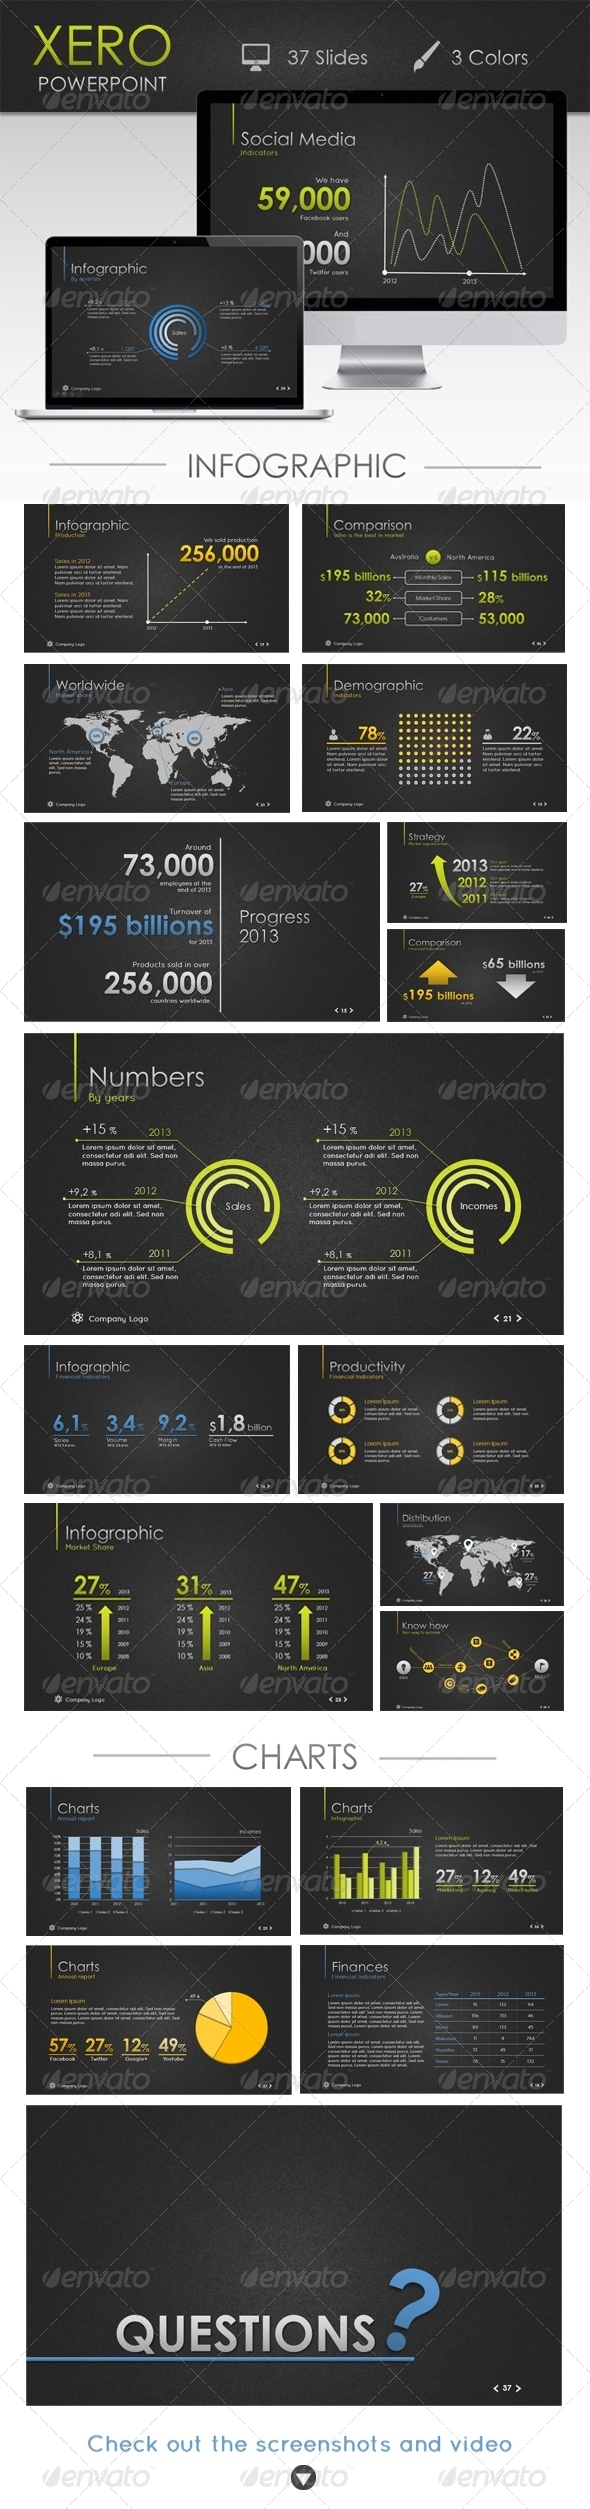 GraphicRiver Xero Powerpoint Template 5178712